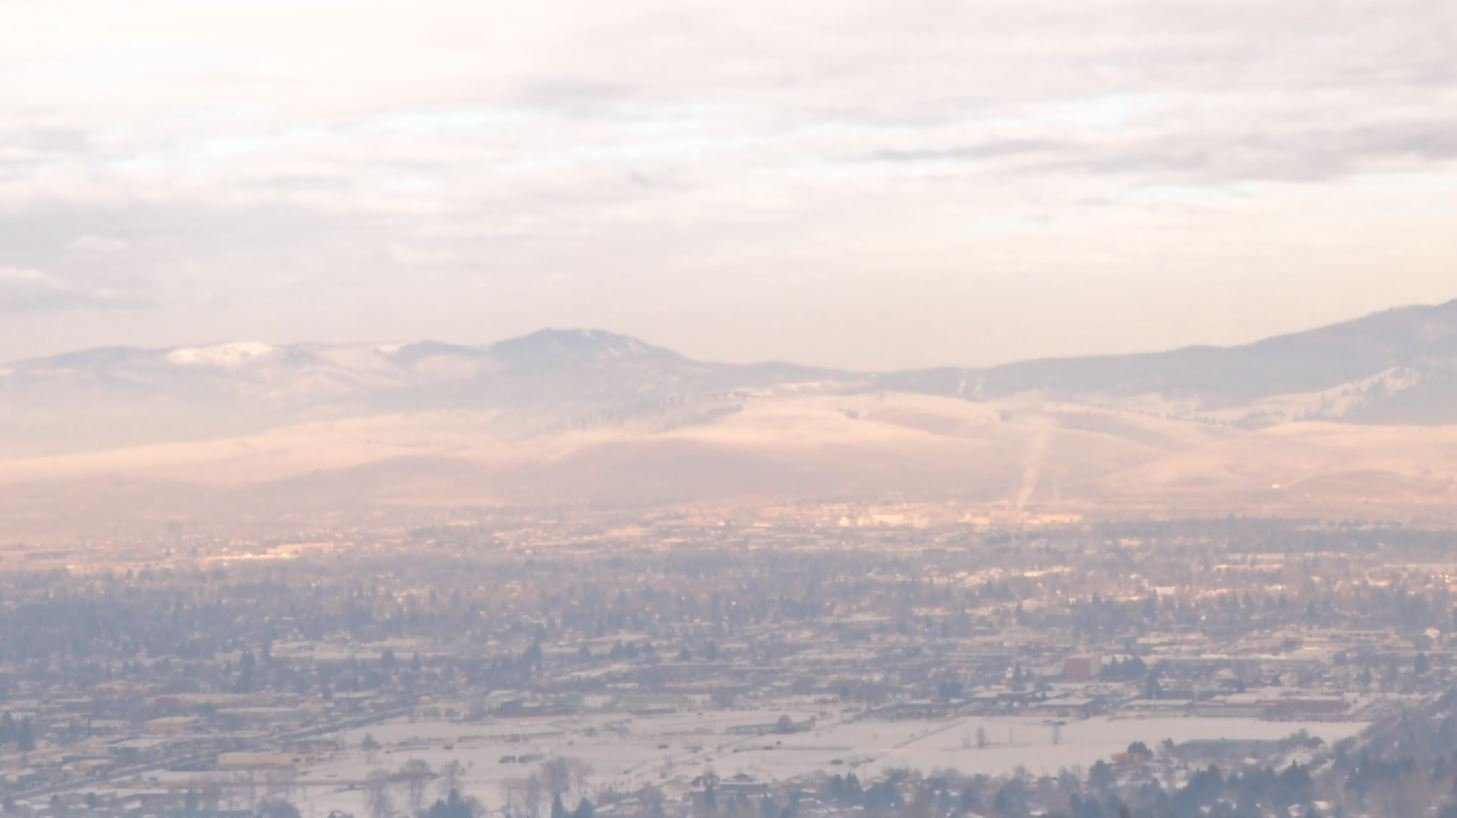 Stage I' Air Pollution Alert remains in effect for Missoula Cou ...